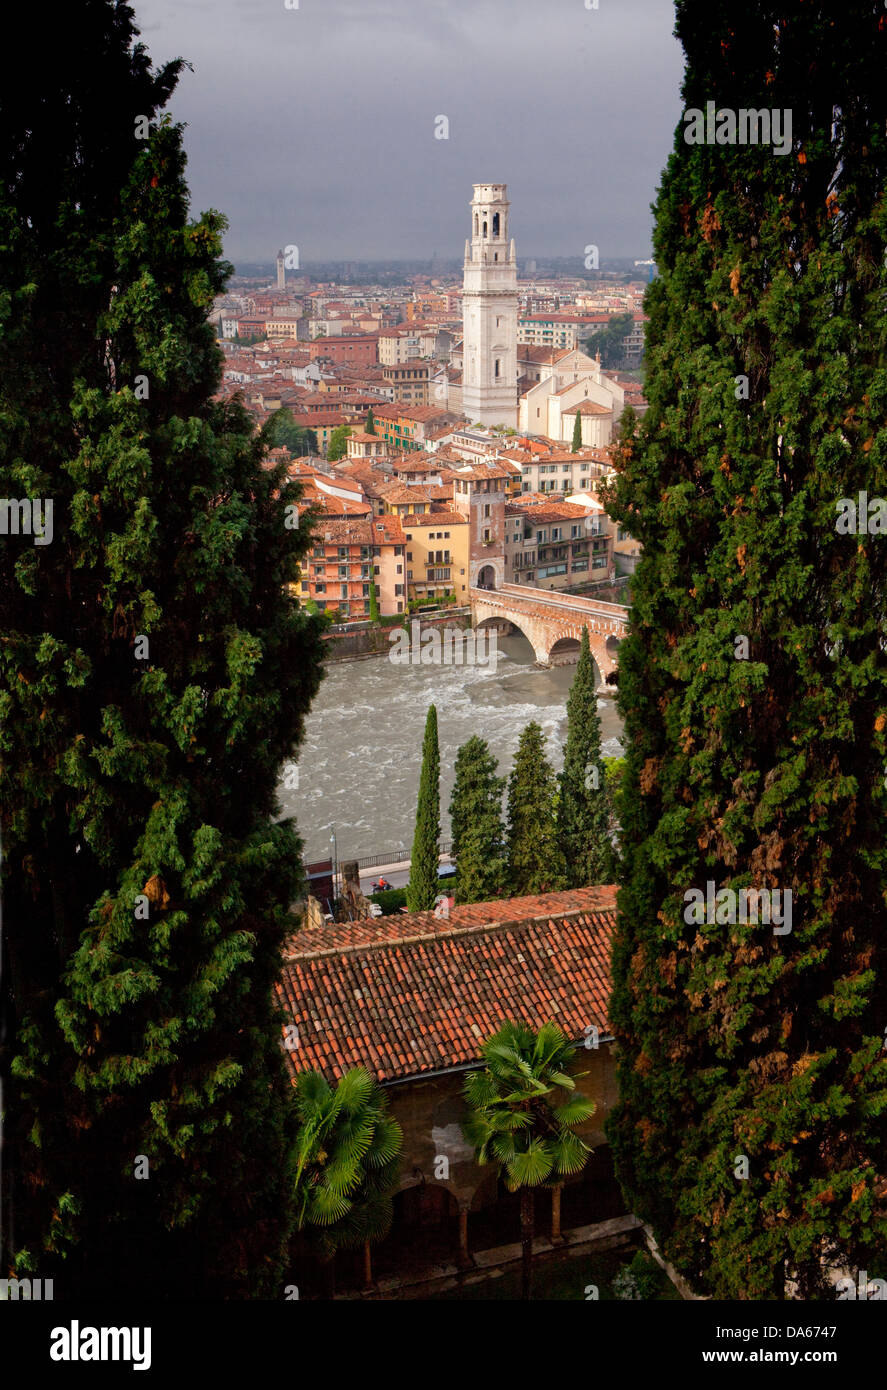 Ponte Pietra, cathedral, dome, Verona, Adige, town, city, Italy, Europe, bridge, river, flow, brook, body of water, - Stock Image